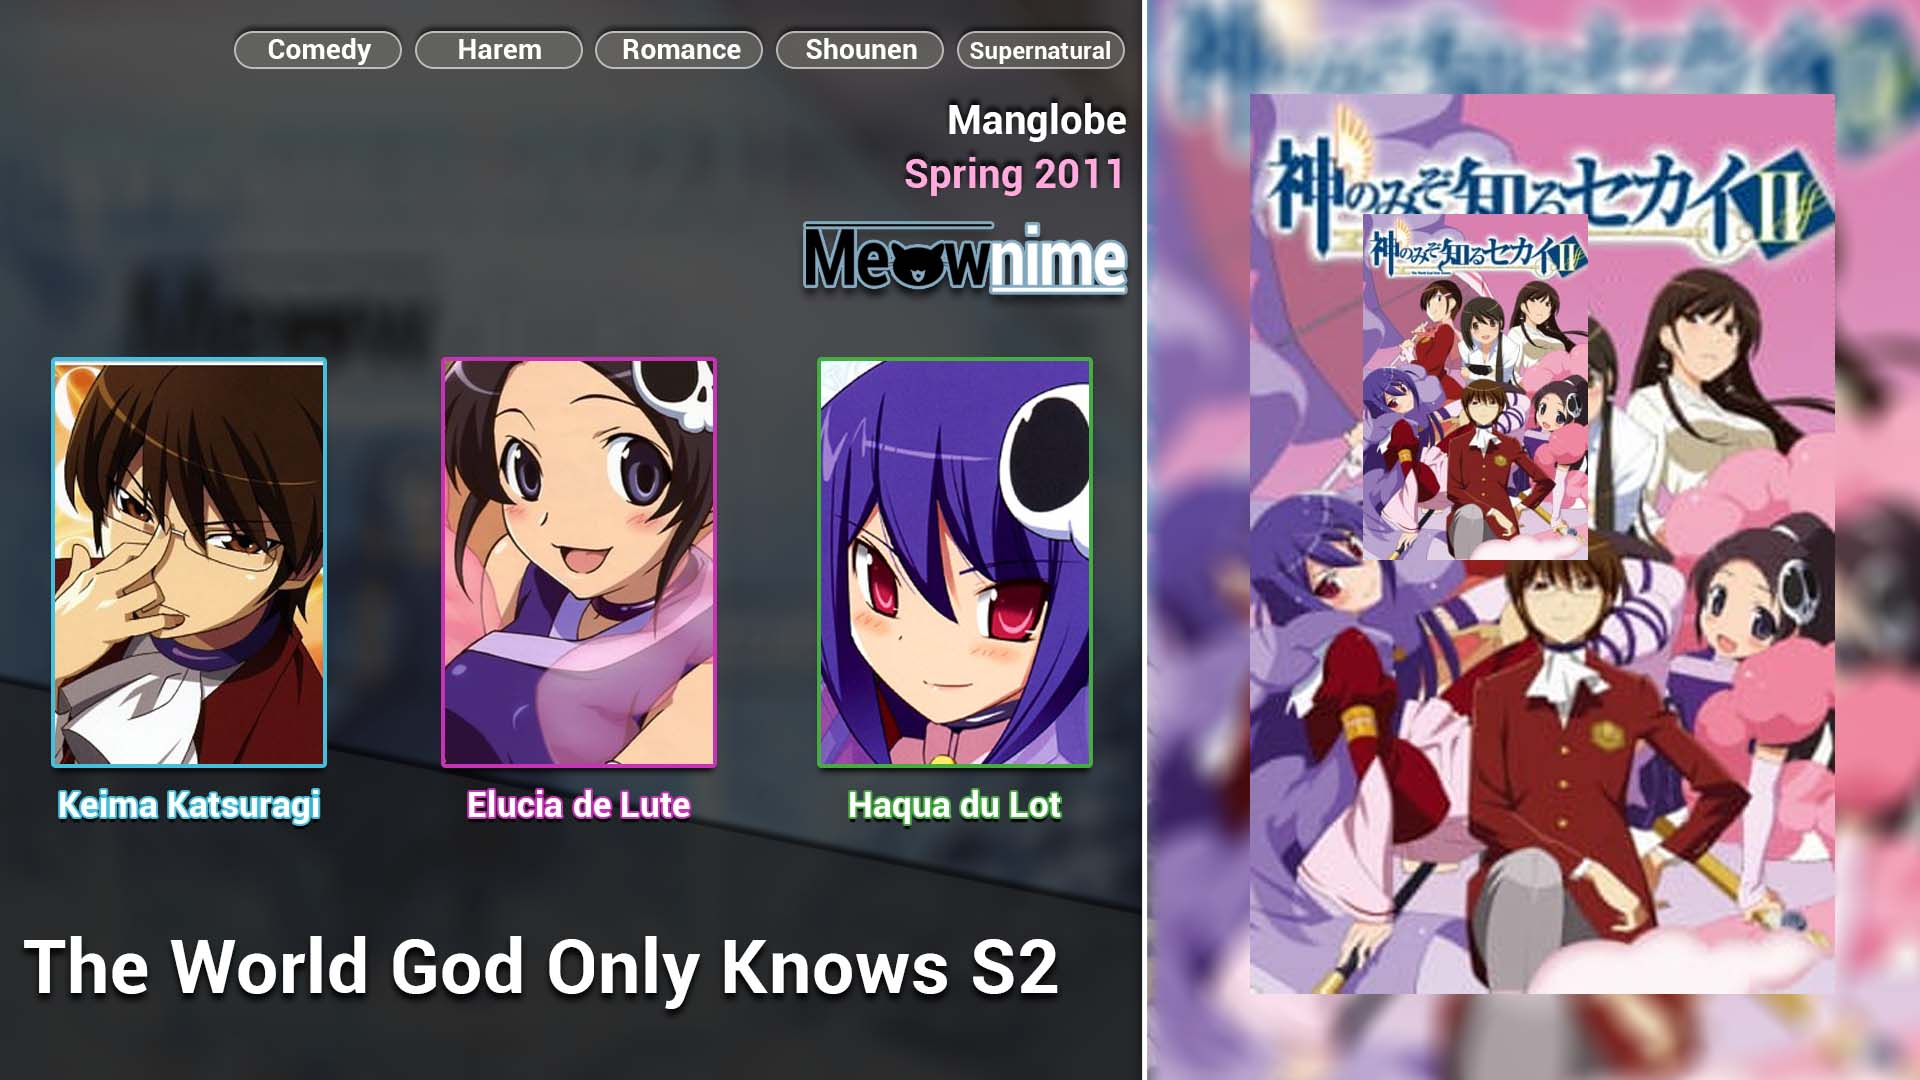 The World God Only Knows S2